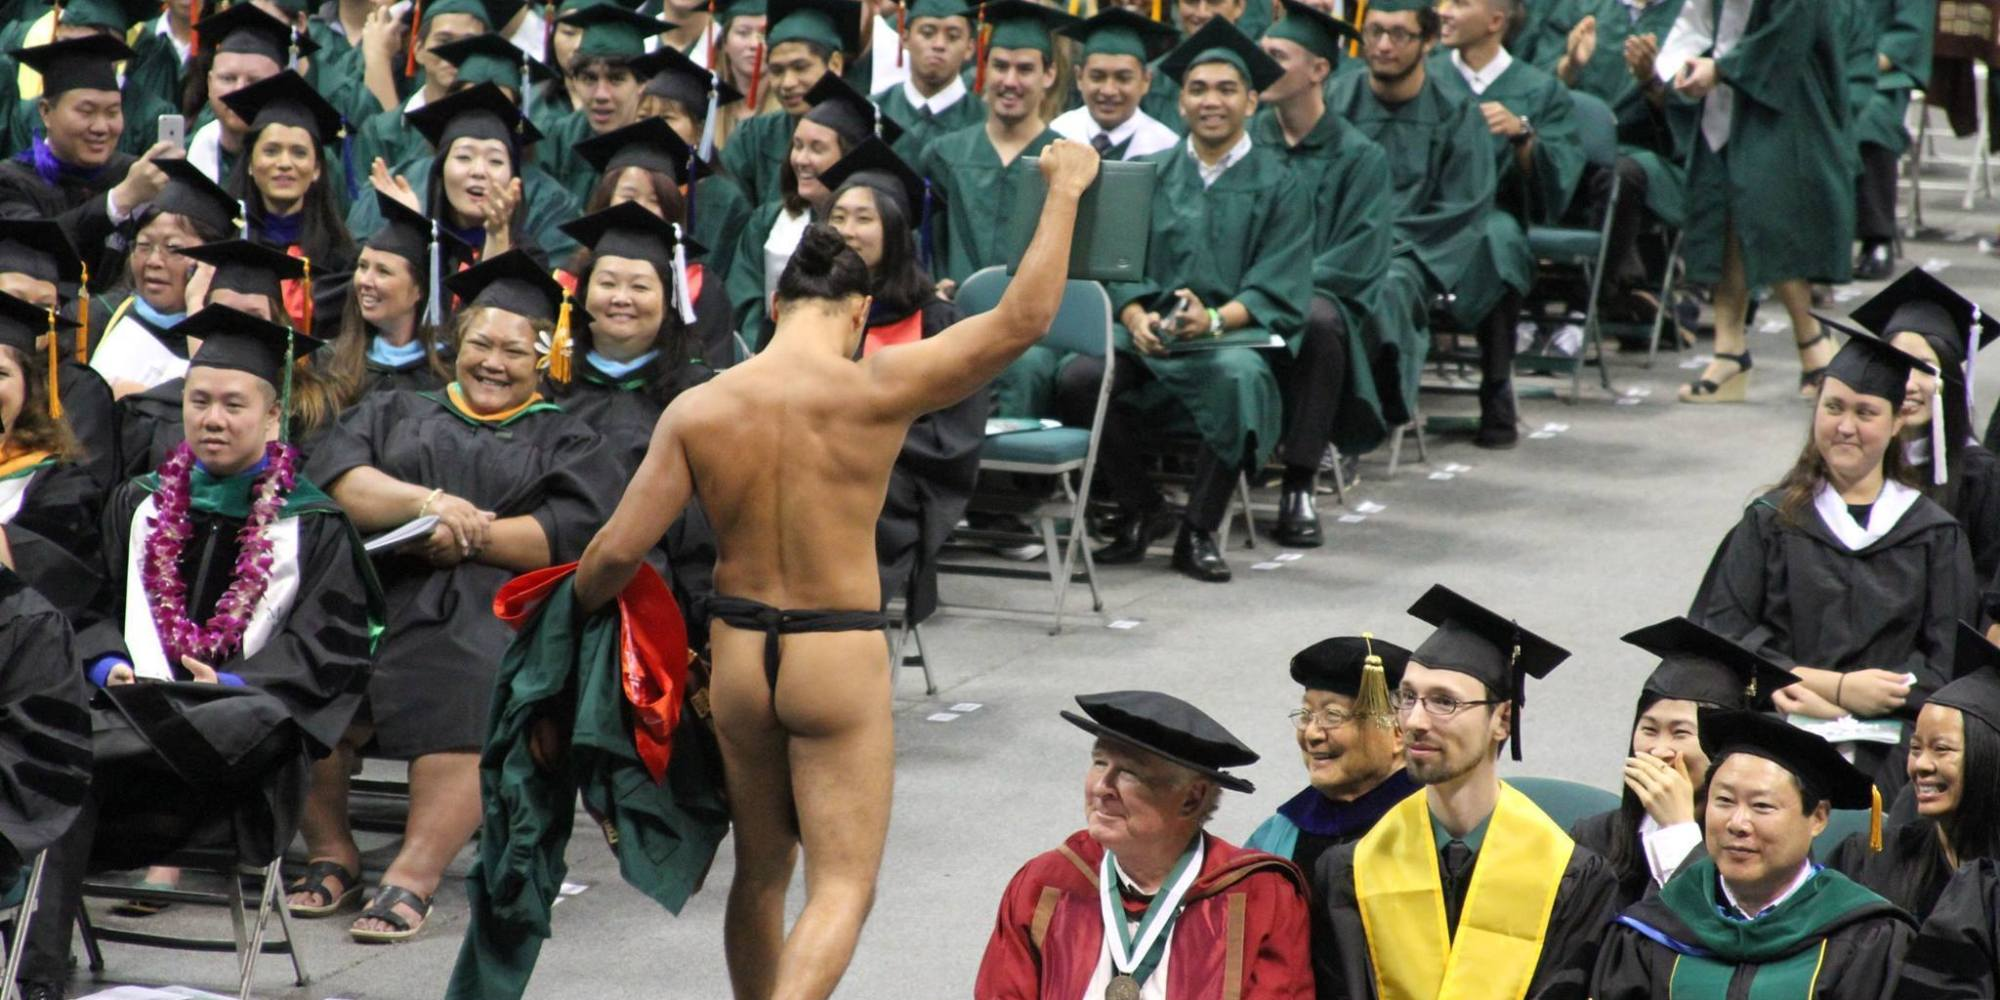 This Graduate Stripped Down For All The Right Reasons (PHOTO) | HuffPost